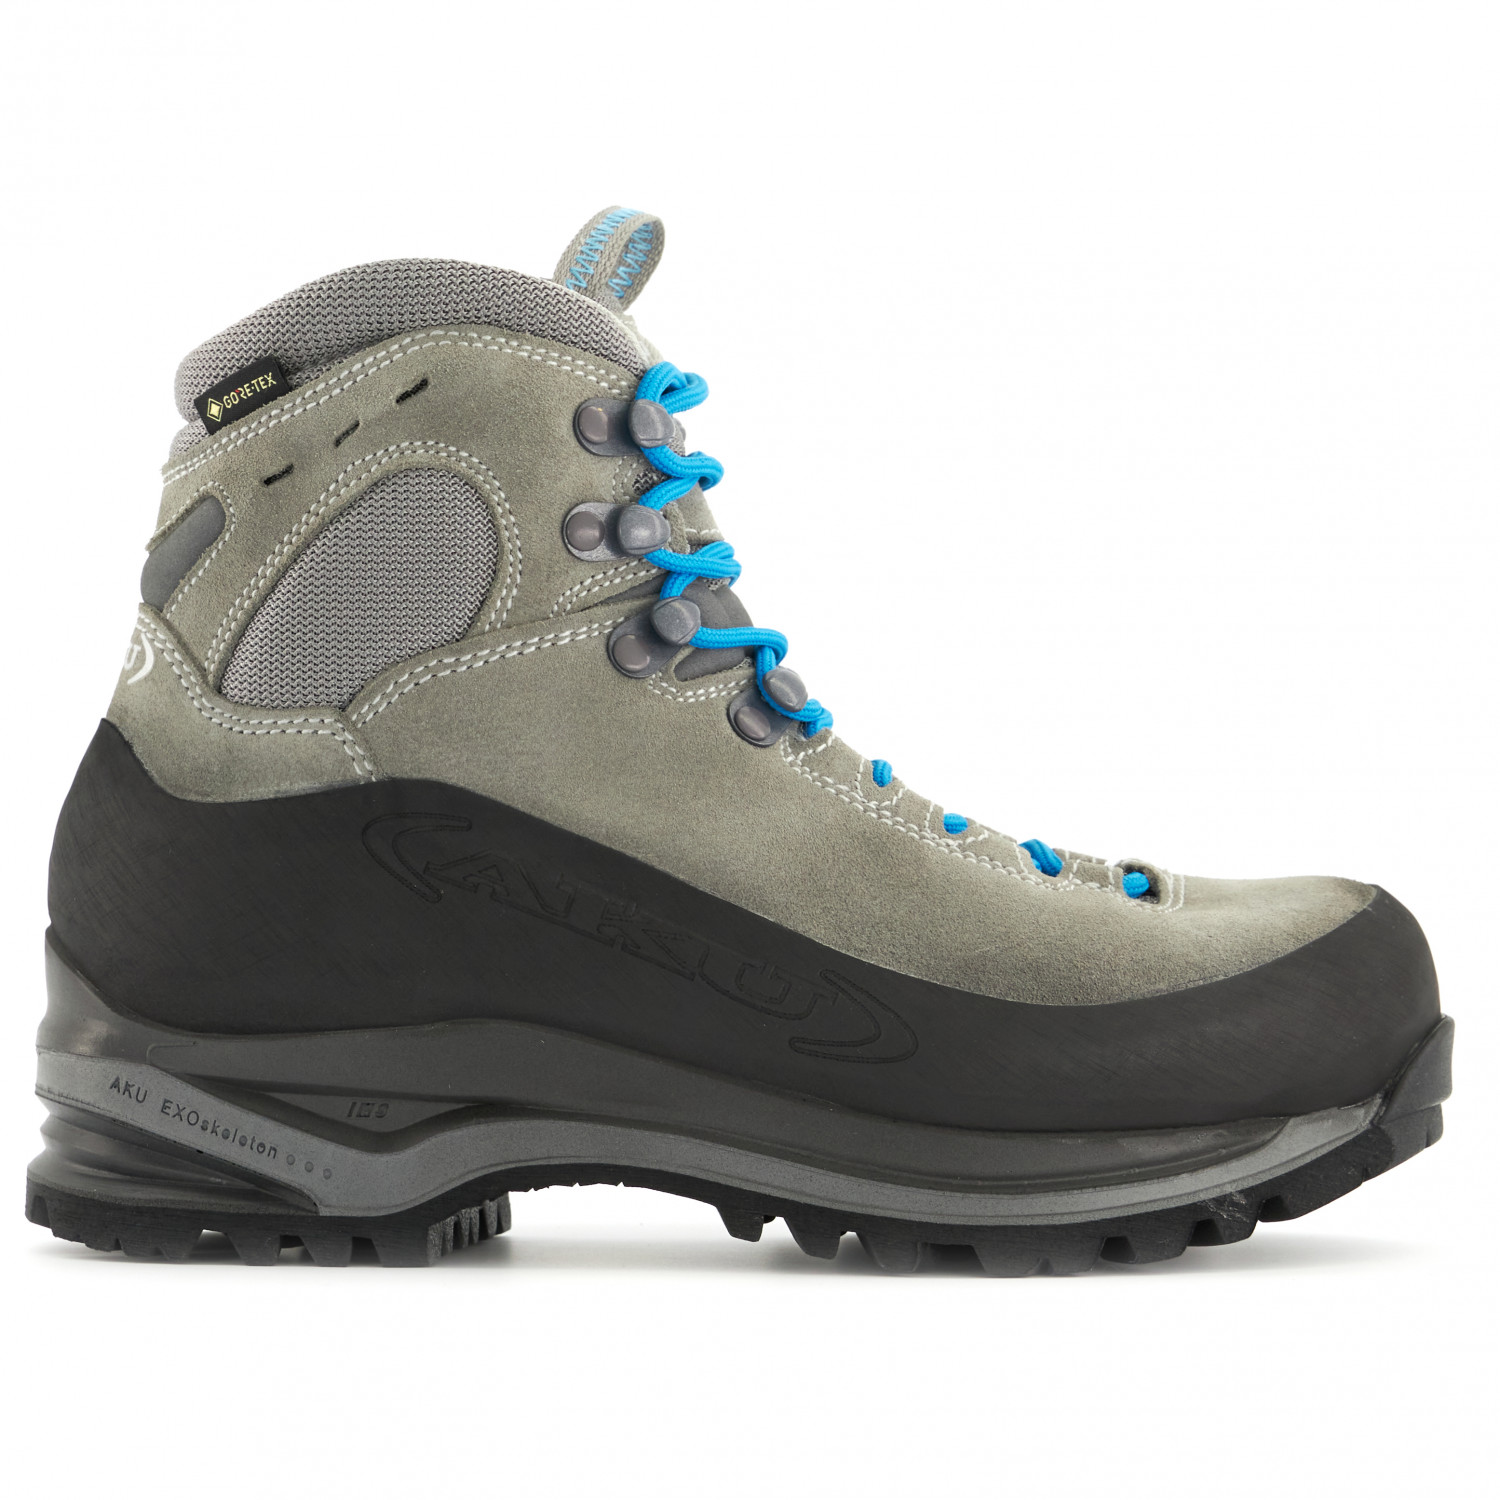 Light Superalp Gtx De Women's Montagne Turquoise6uk Aku Chaussures Grey F1JTlKc